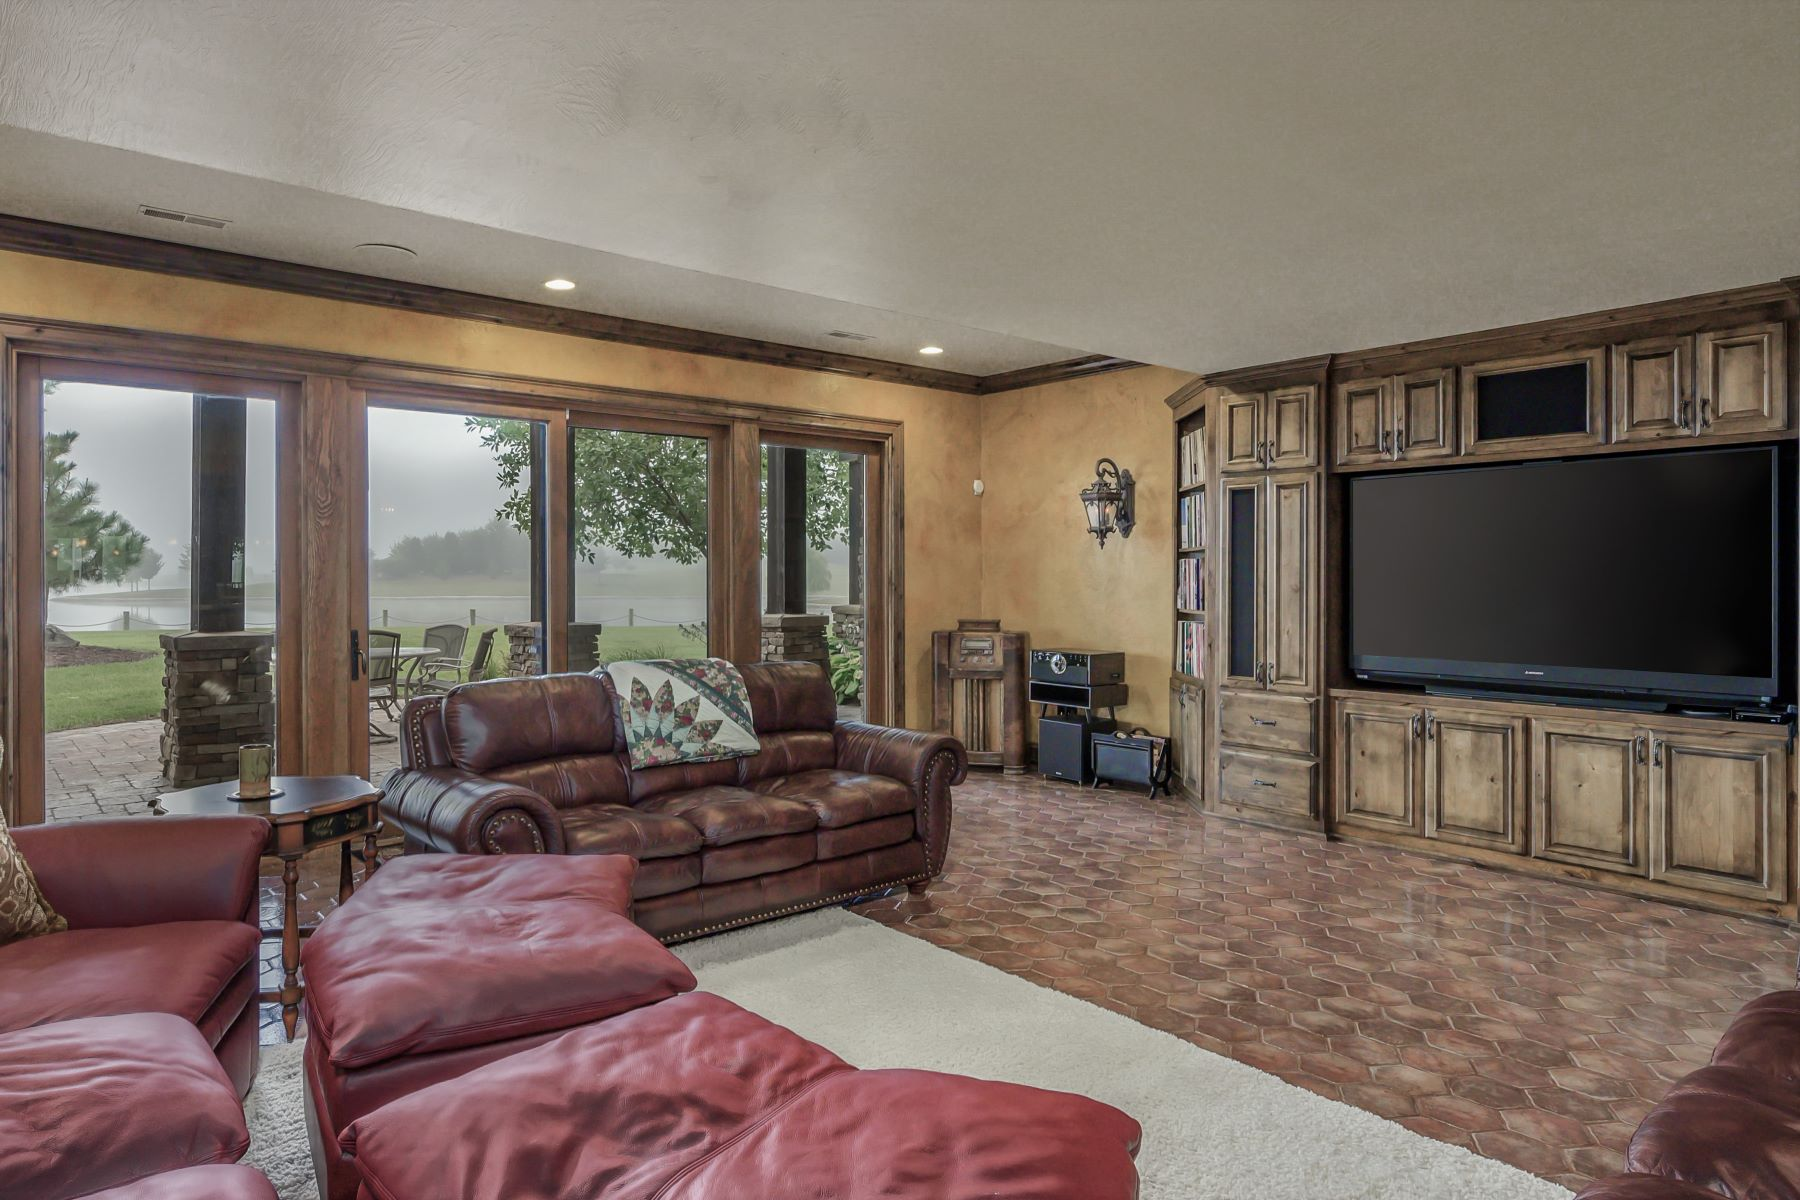 Additional photo for property listing at Country Shores Nature Estate 17715 Barth Avenue Salisbury, Missouri 65281 United States